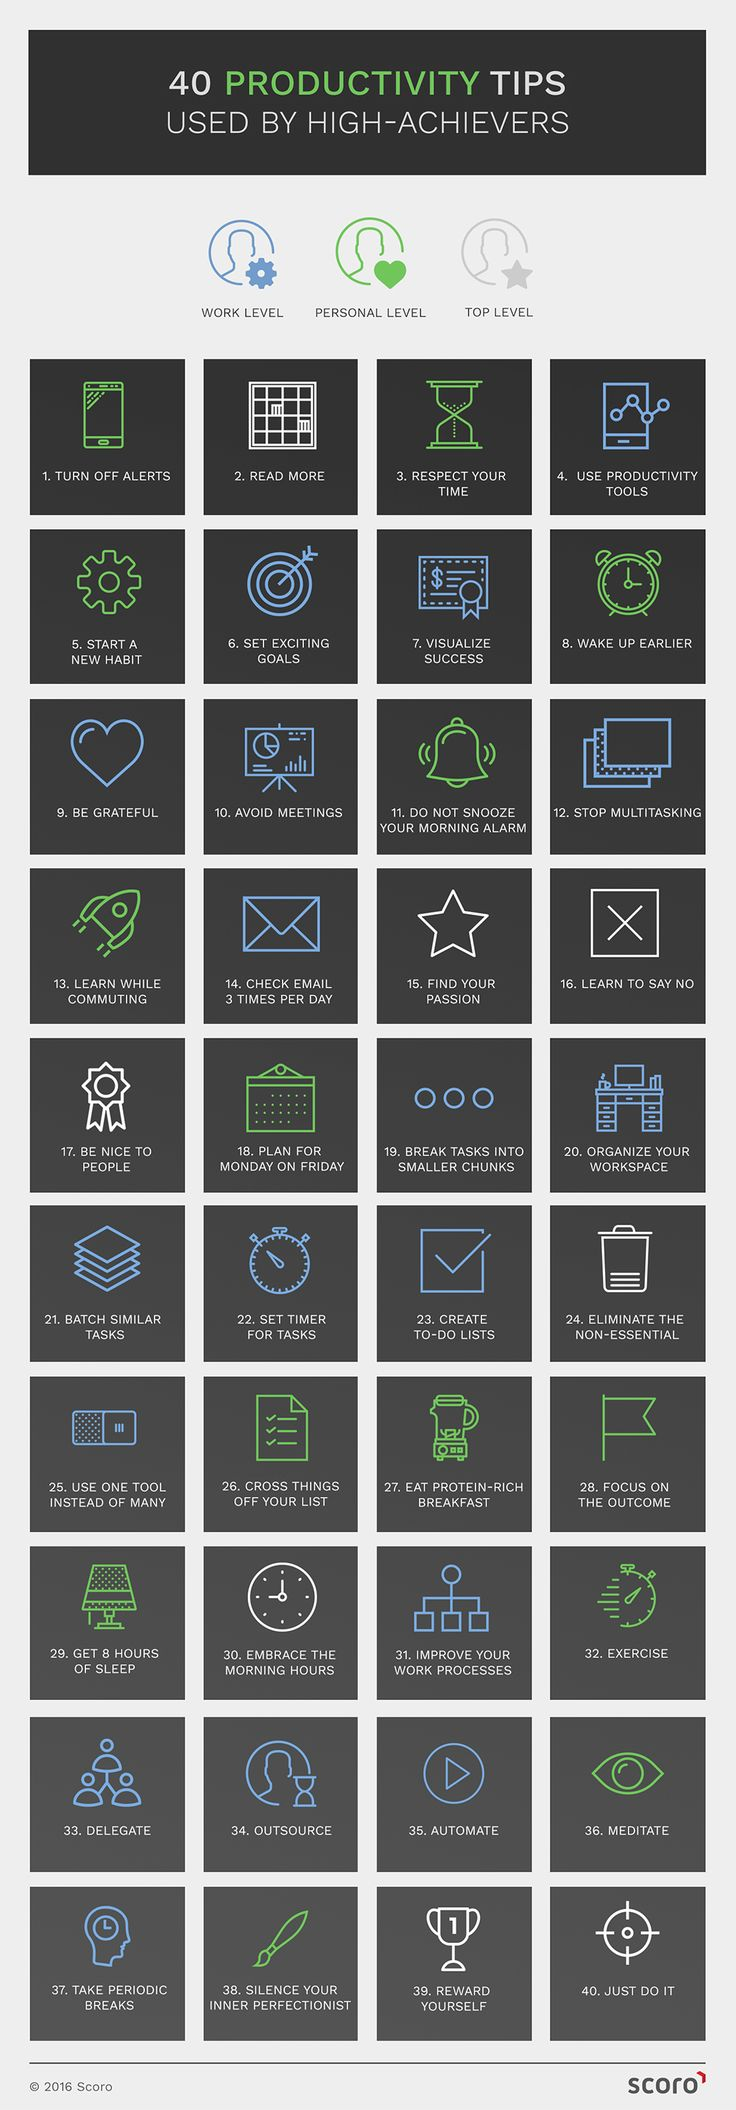 40 #Productivity Hacks Used by High Achievers #Infographic